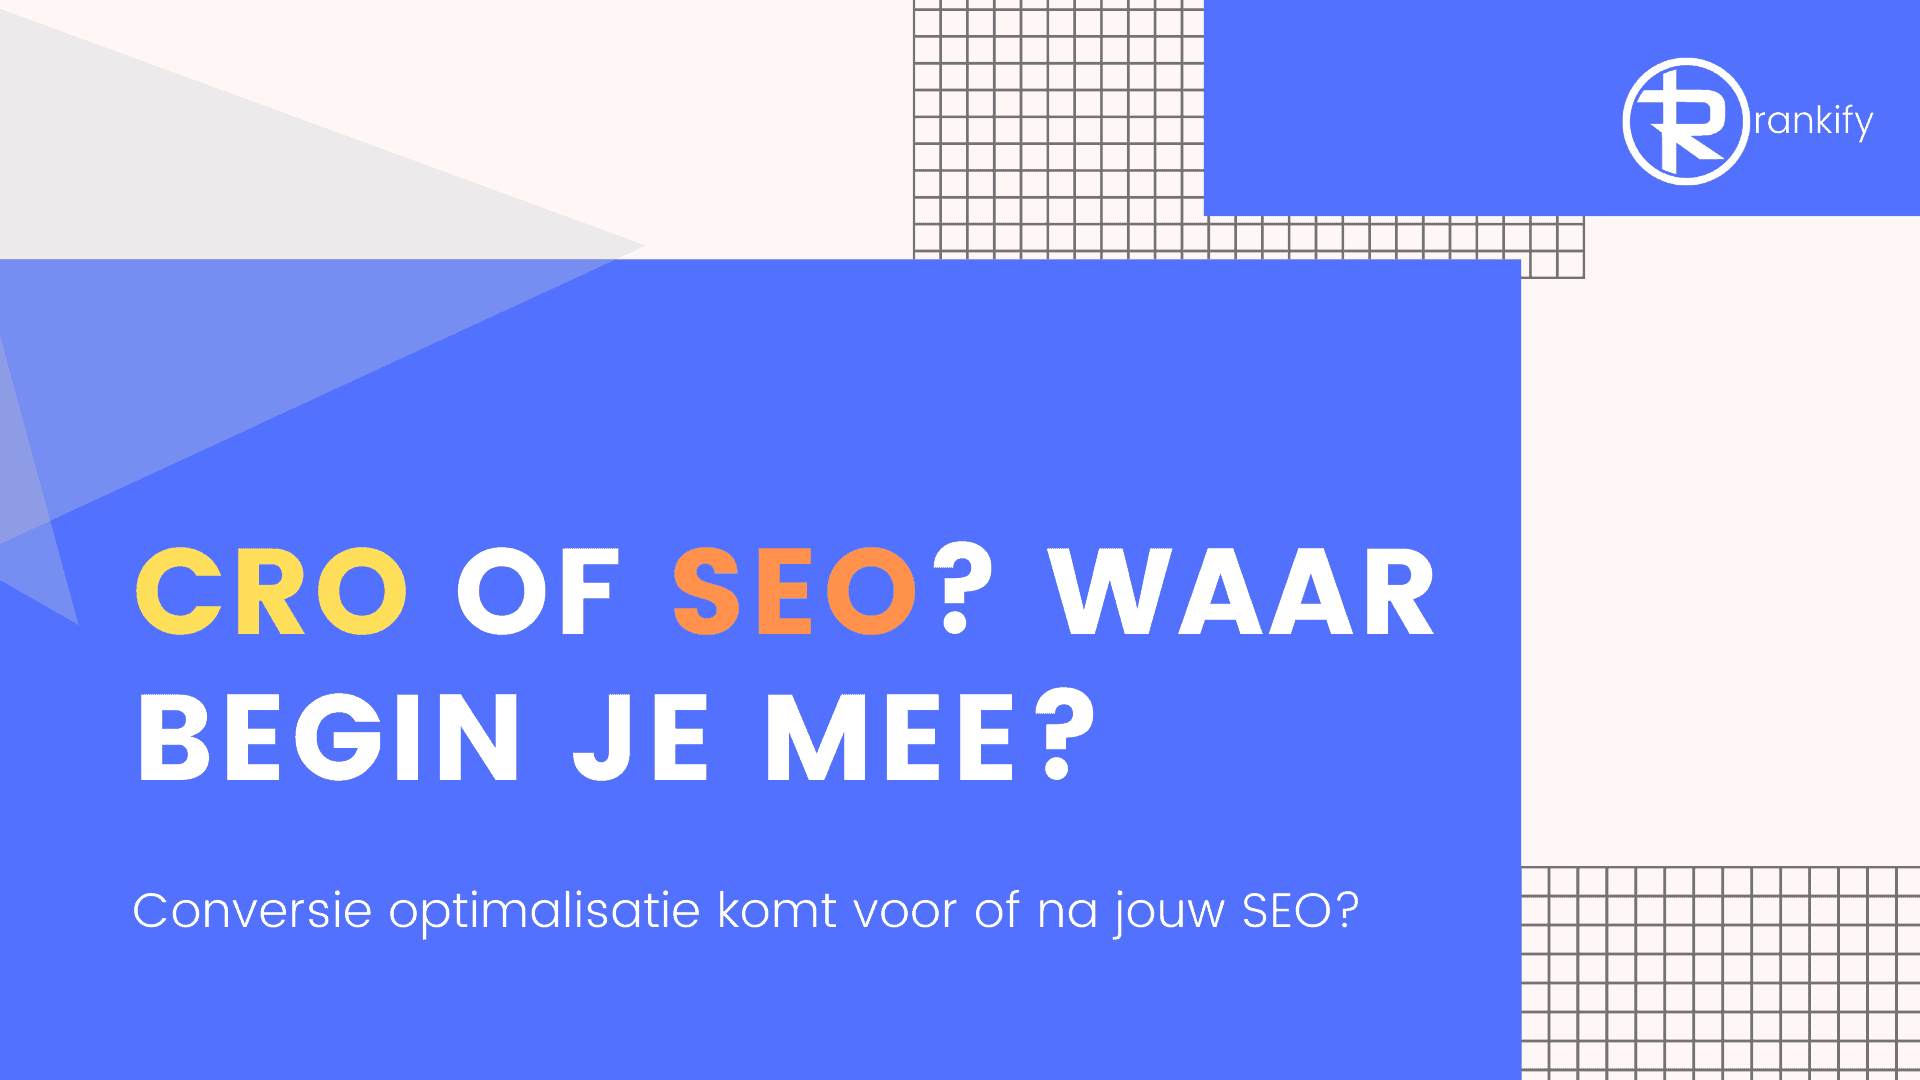 cro of seo, waar begin je mee